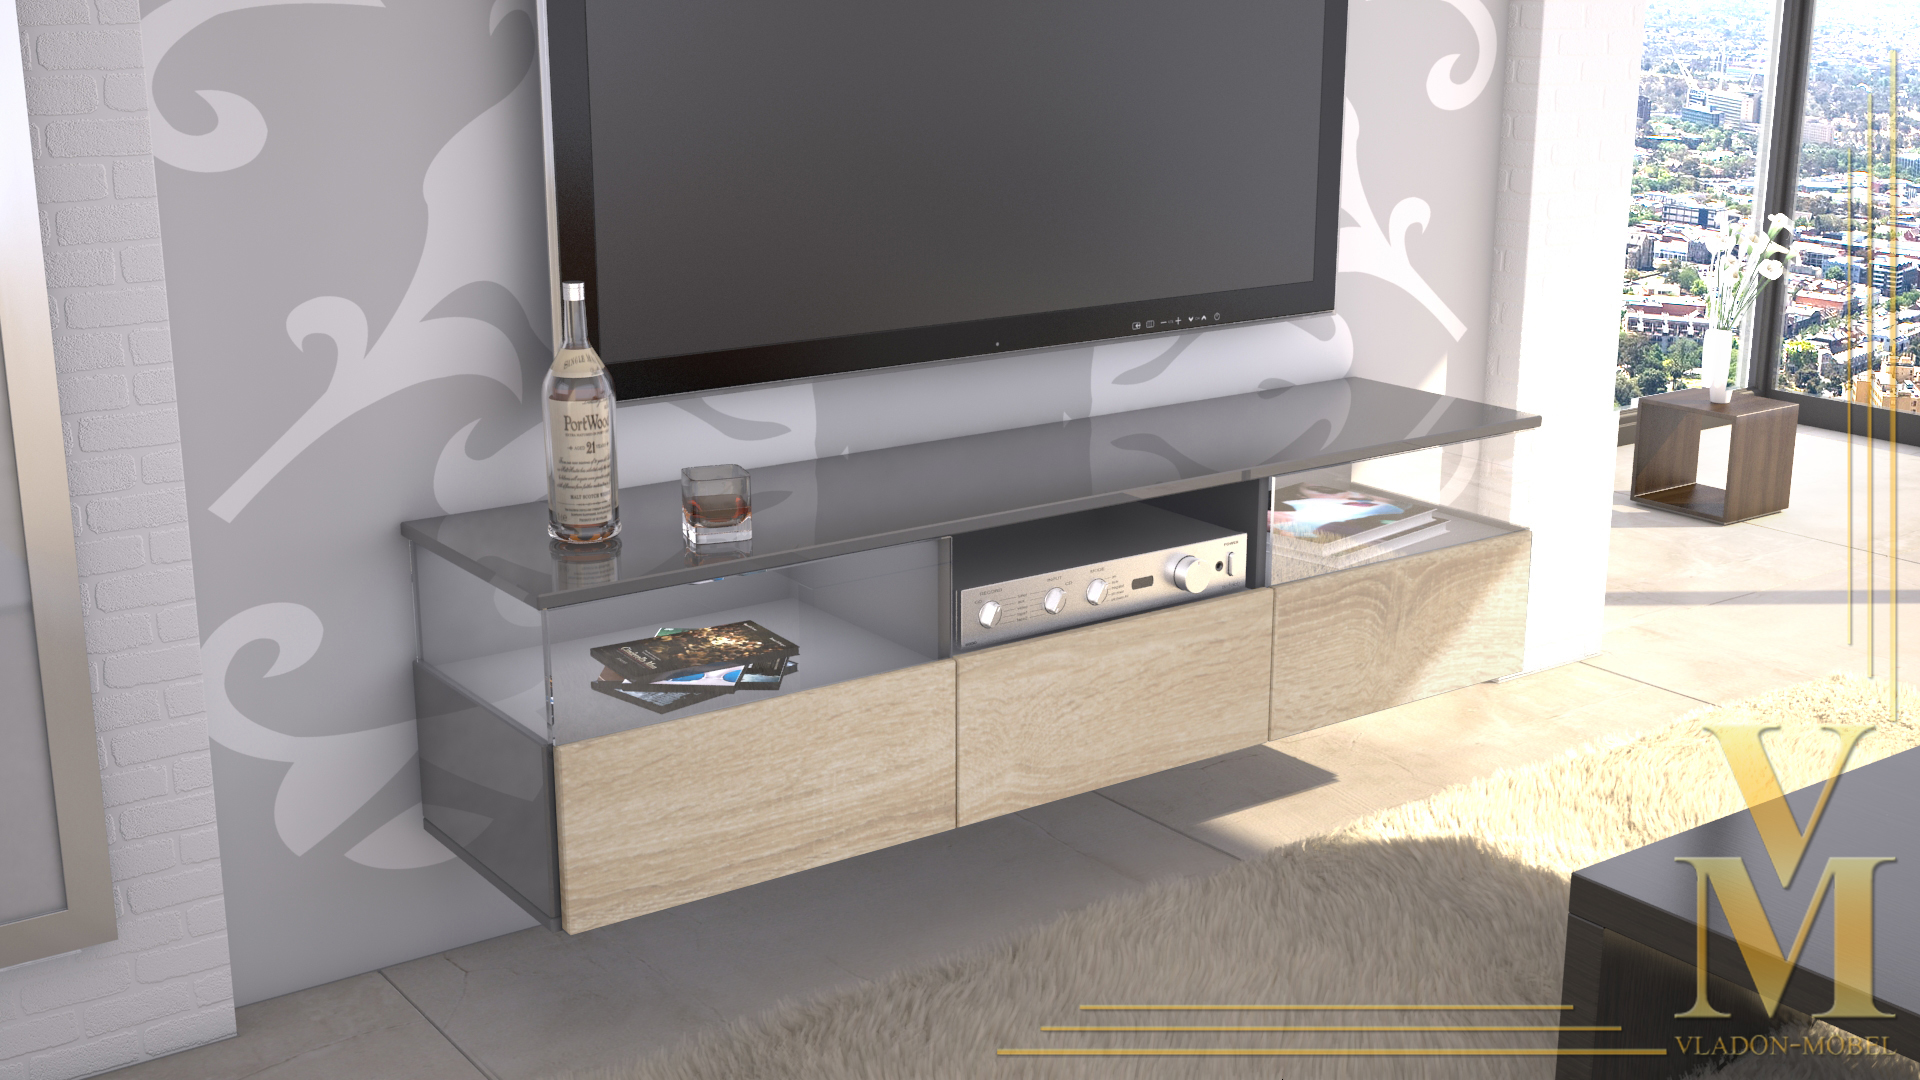 lowboard kommode tv board unterschrank almeria grau. Black Bedroom Furniture Sets. Home Design Ideas